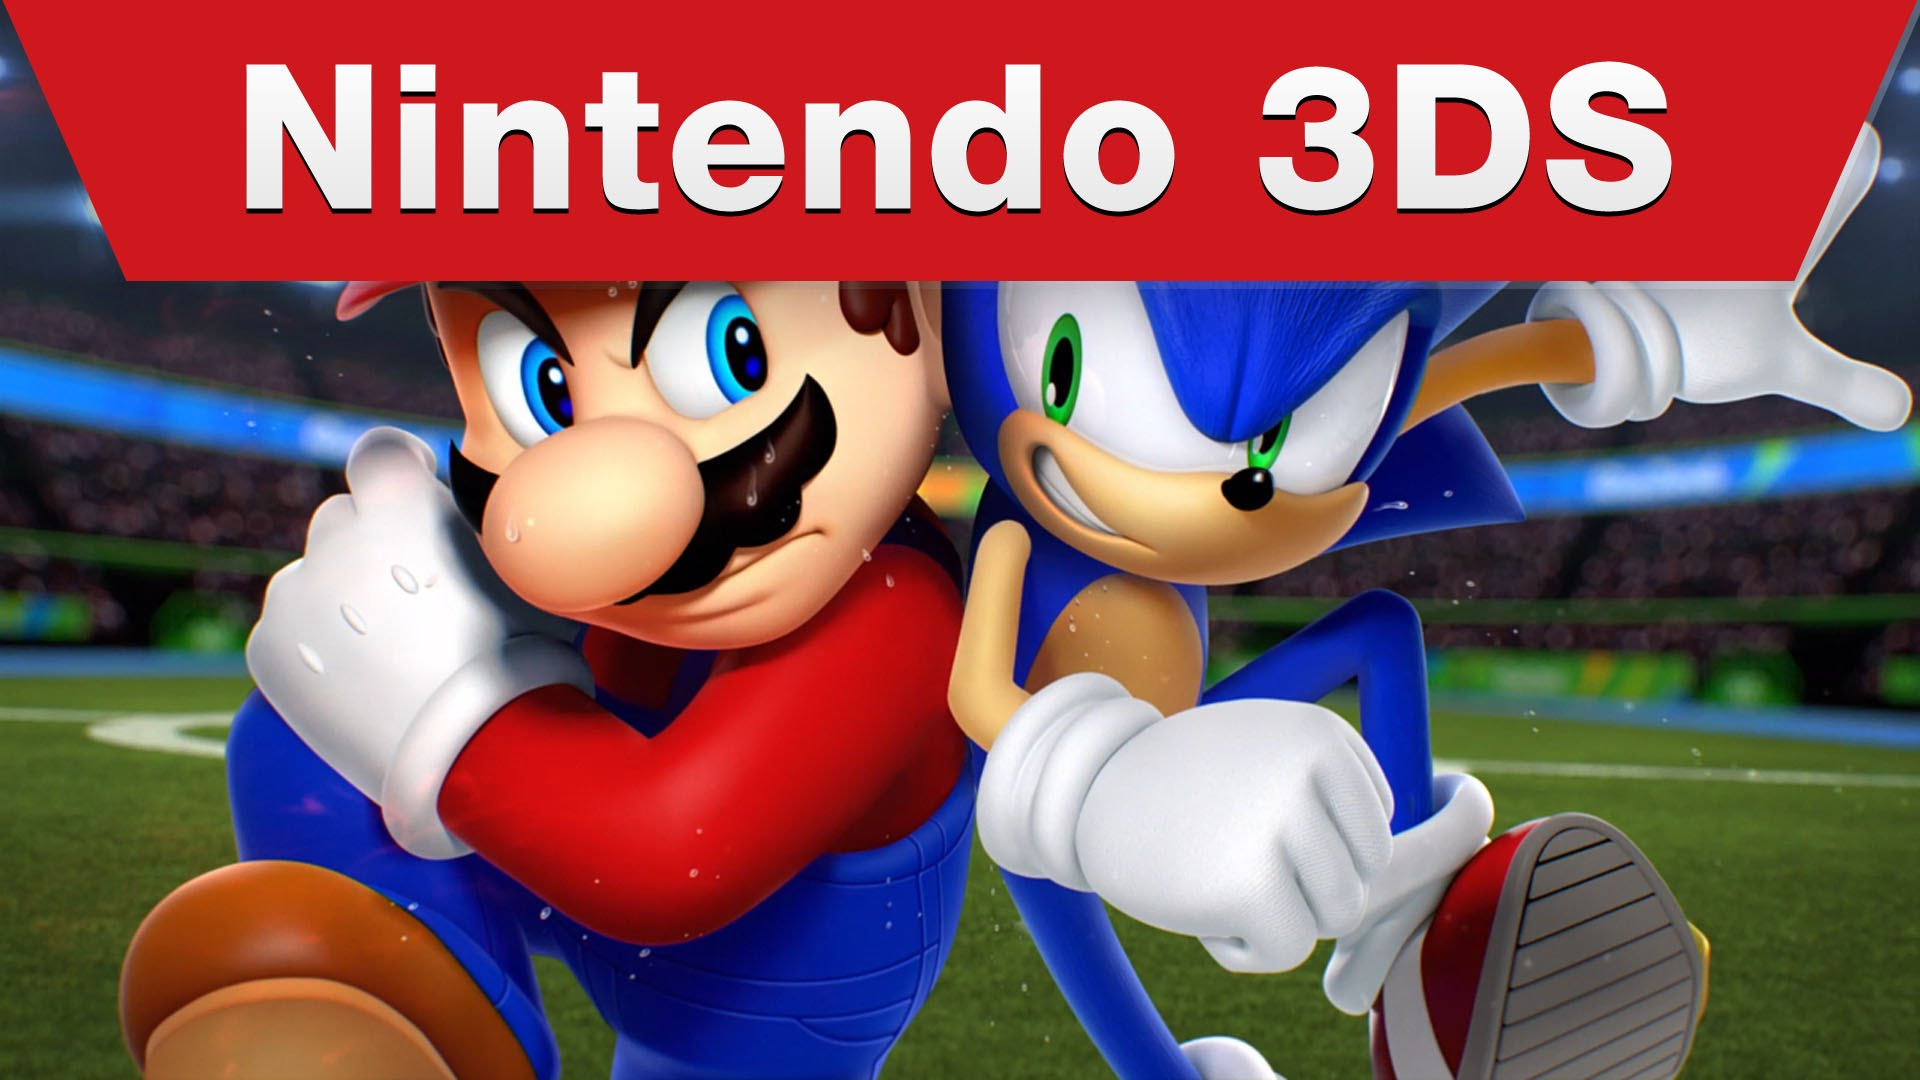 Mario & Sonic at the Rio 2016 Olympic Games - Mario & Sonic Are Going for the Gold!